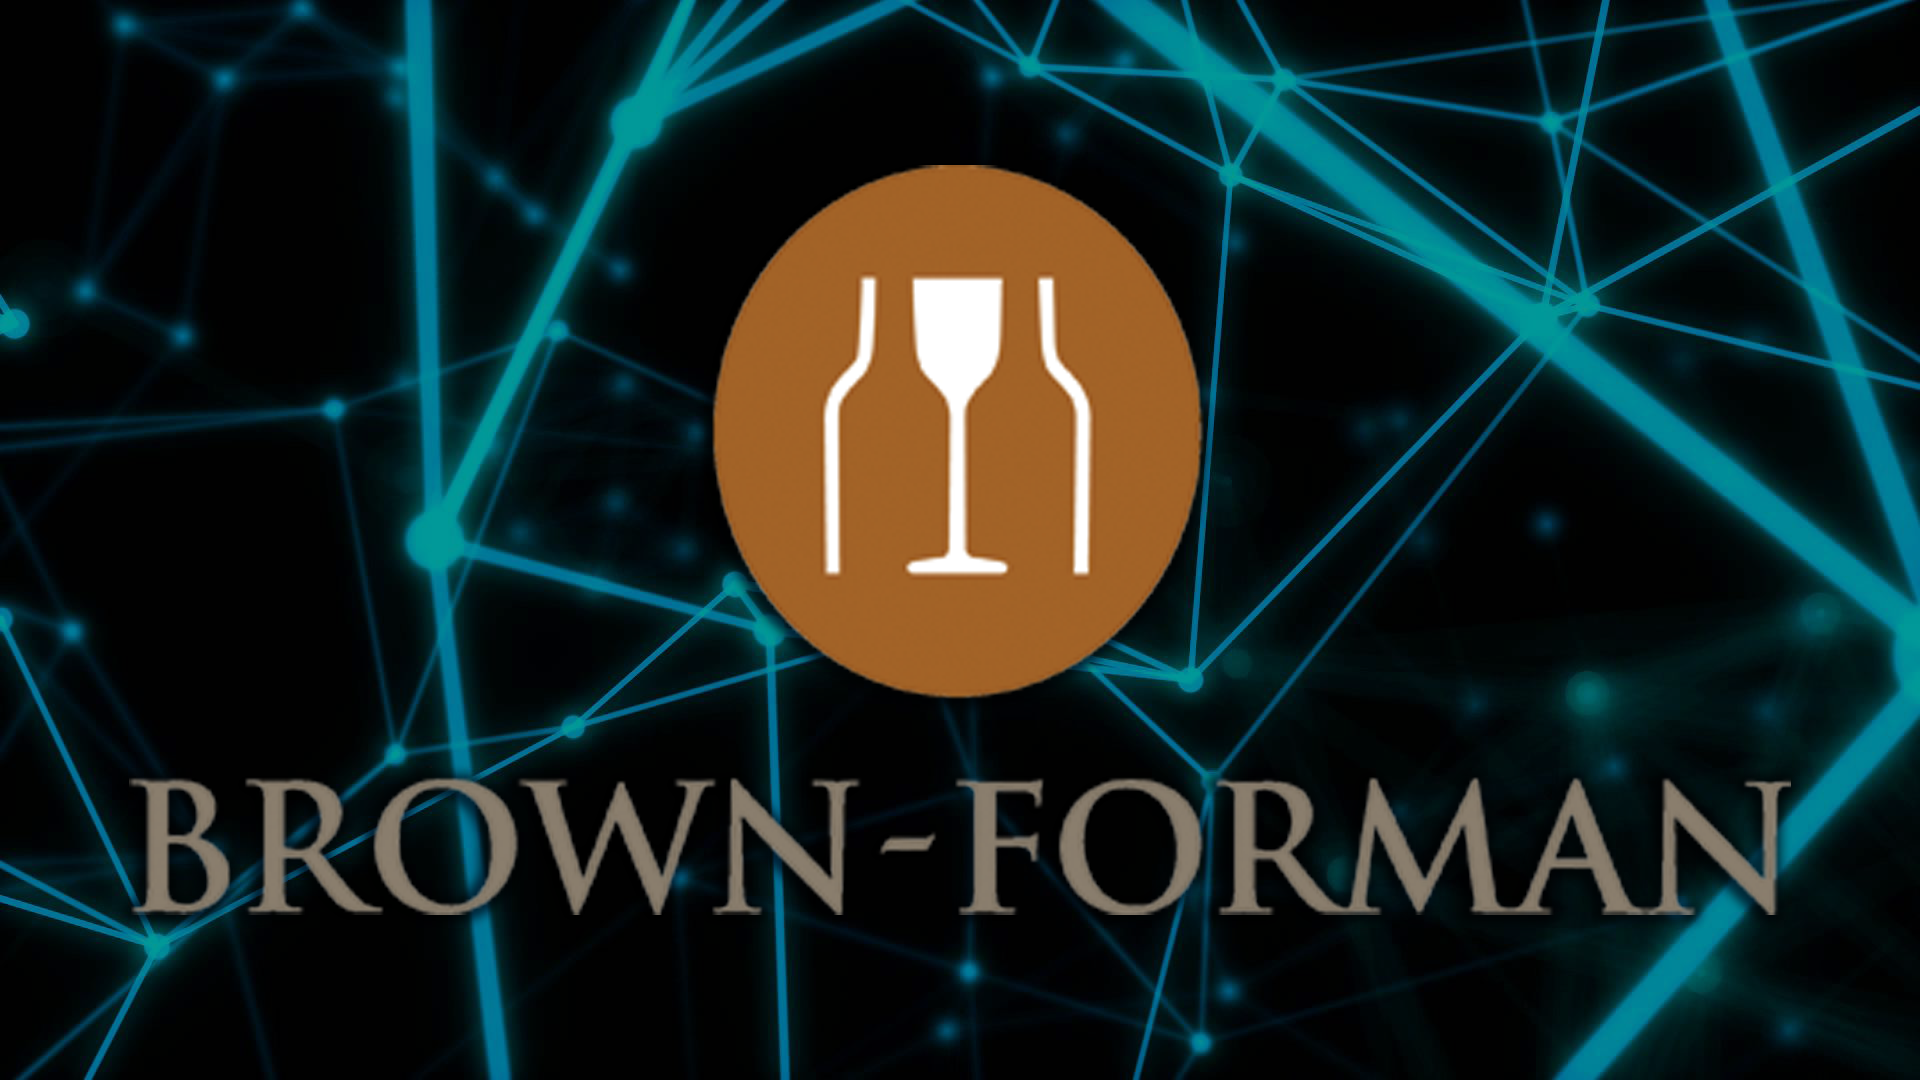 Brown-Forman-Hologruf-Client